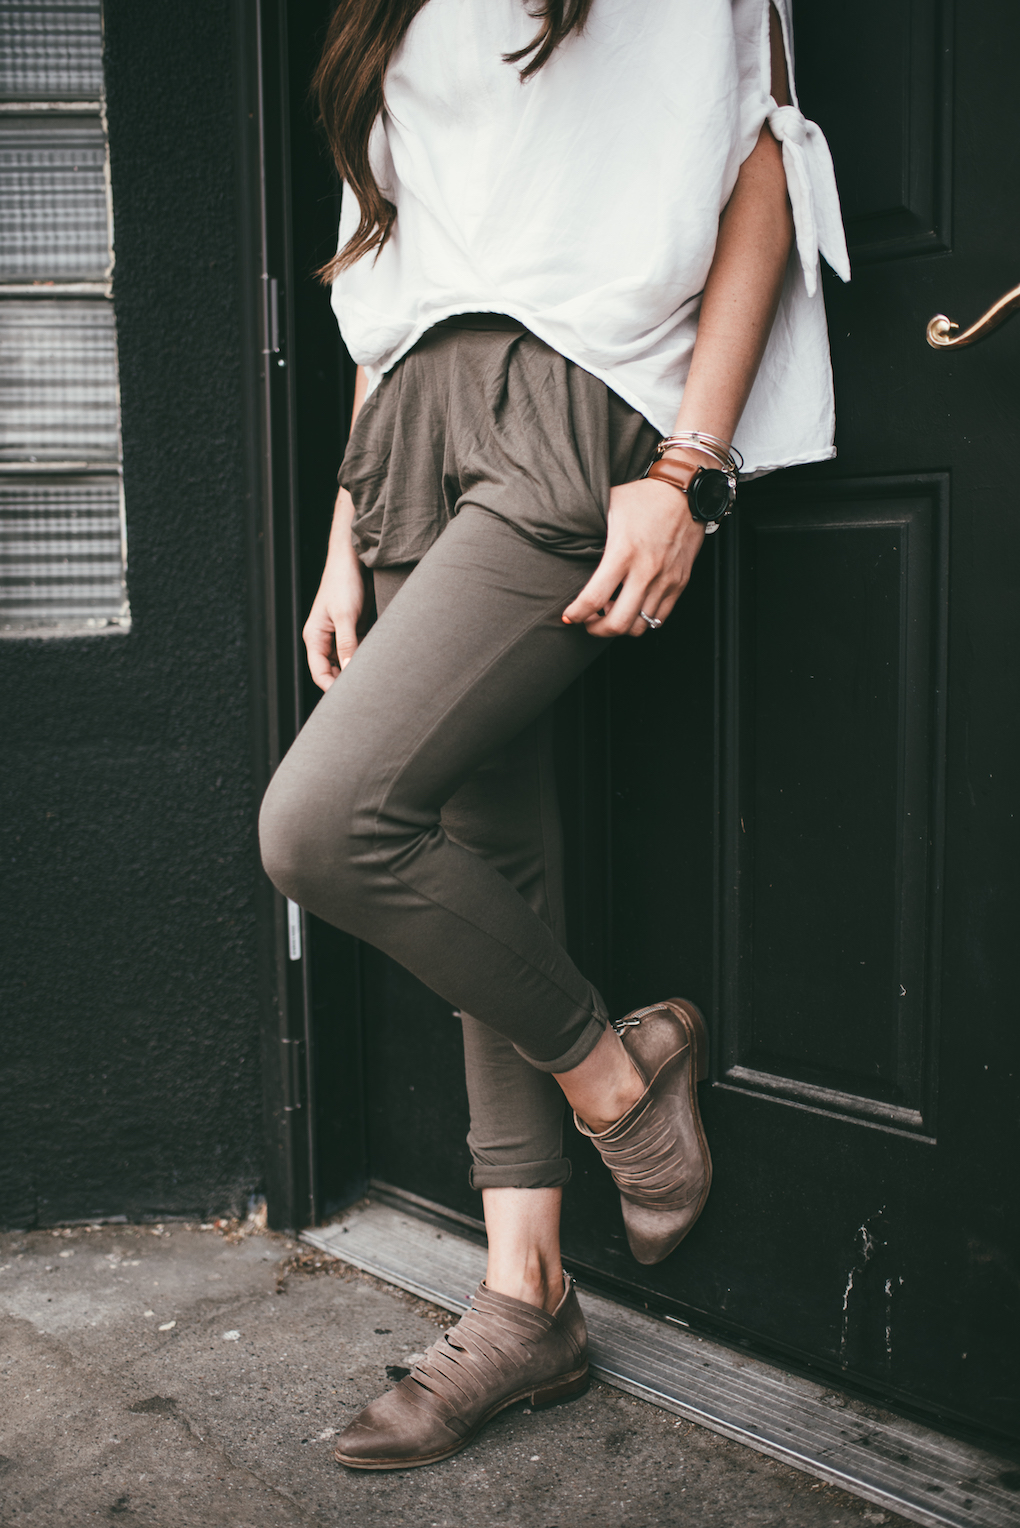 olive green knit green pants with oversized white top on girl standing in front of all black doorway with long brown curled hair